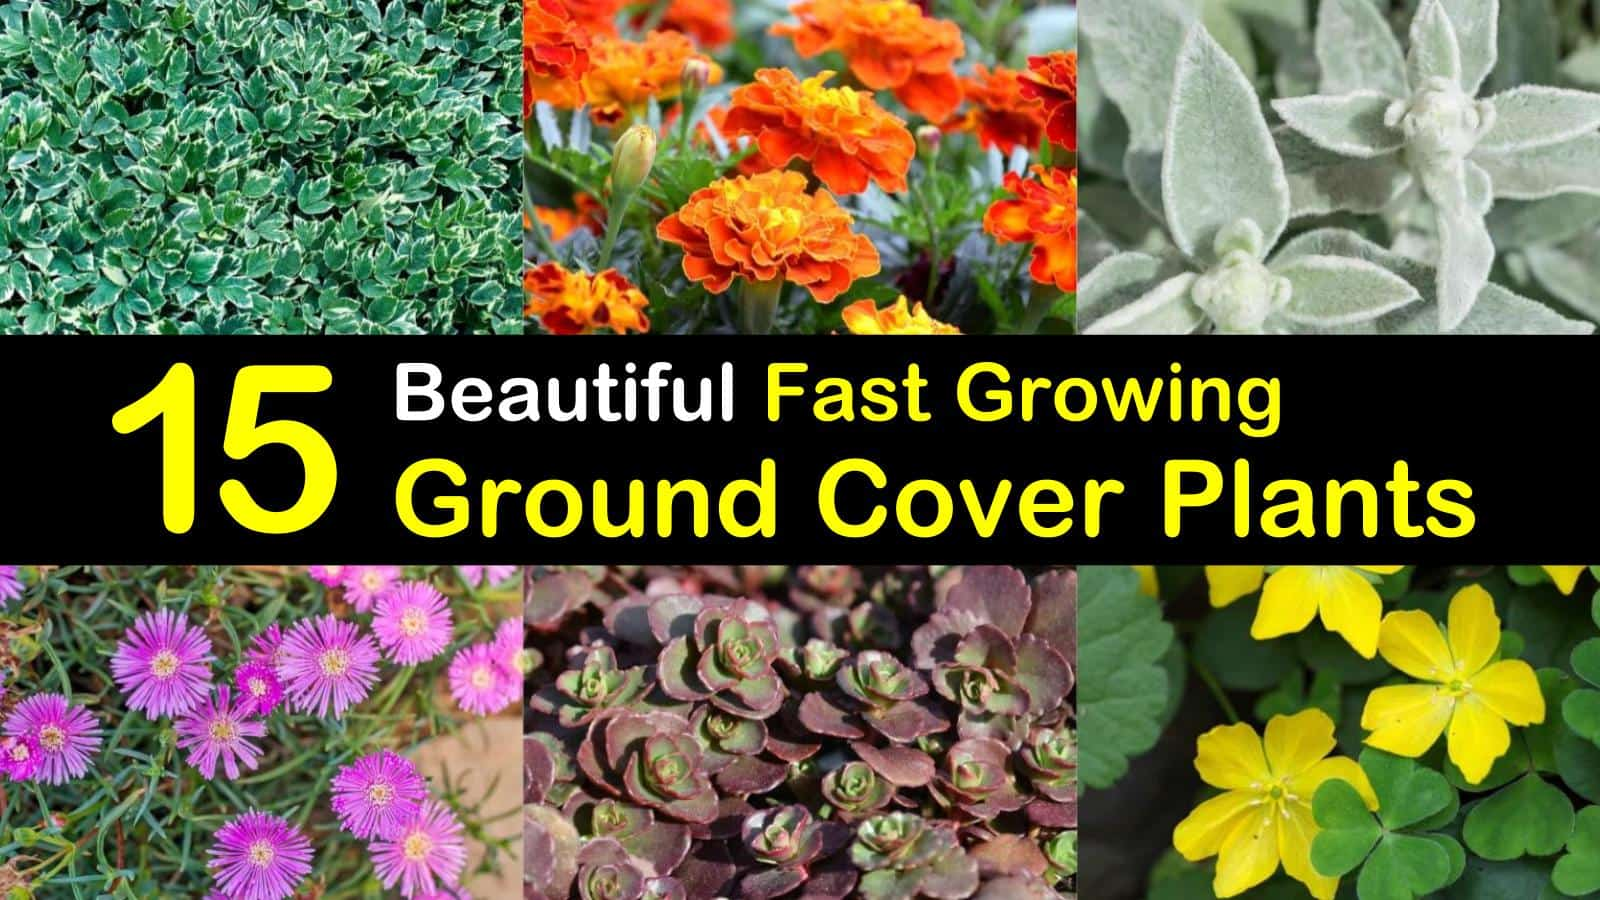 fast growing ground cover plants titleimg1